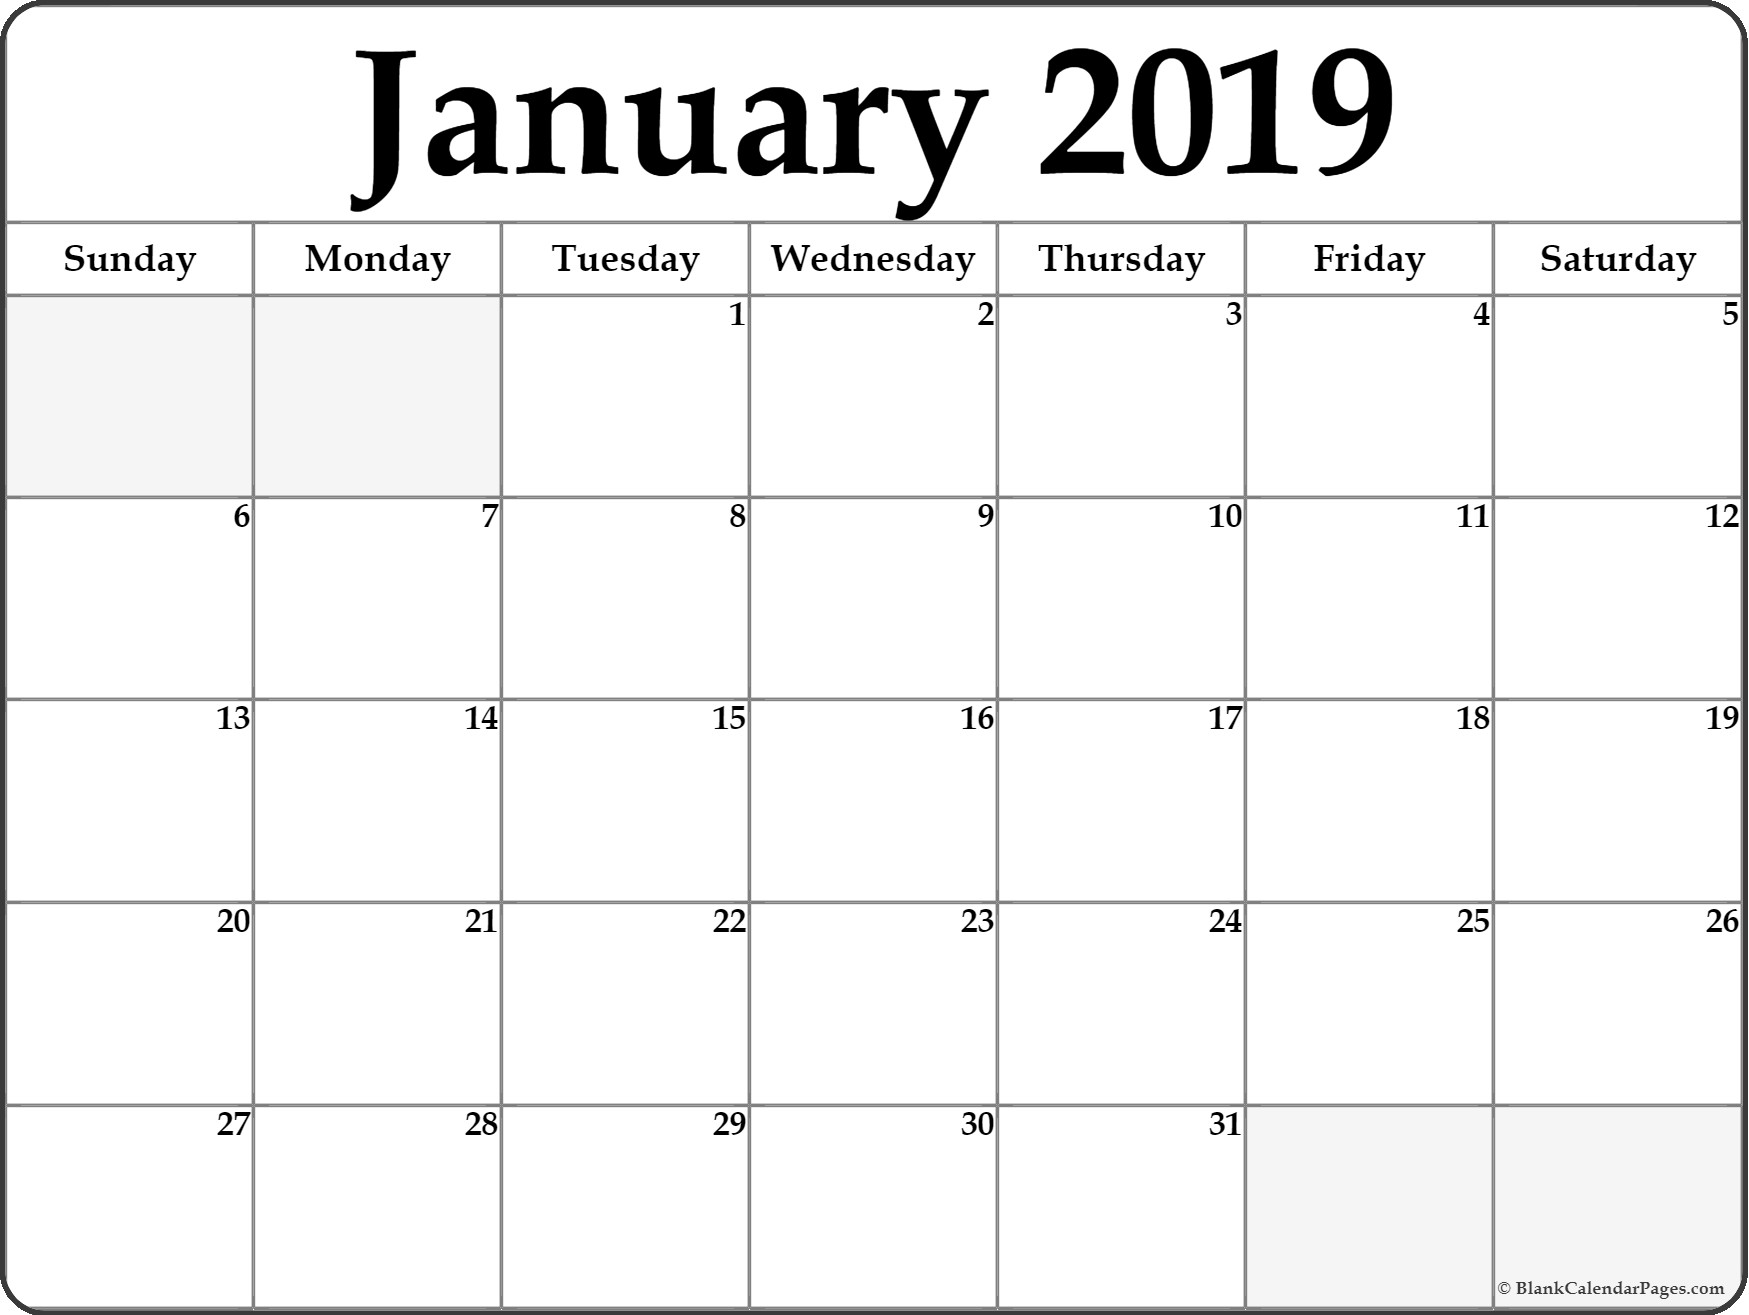 January Calendar 2019 Printable Template